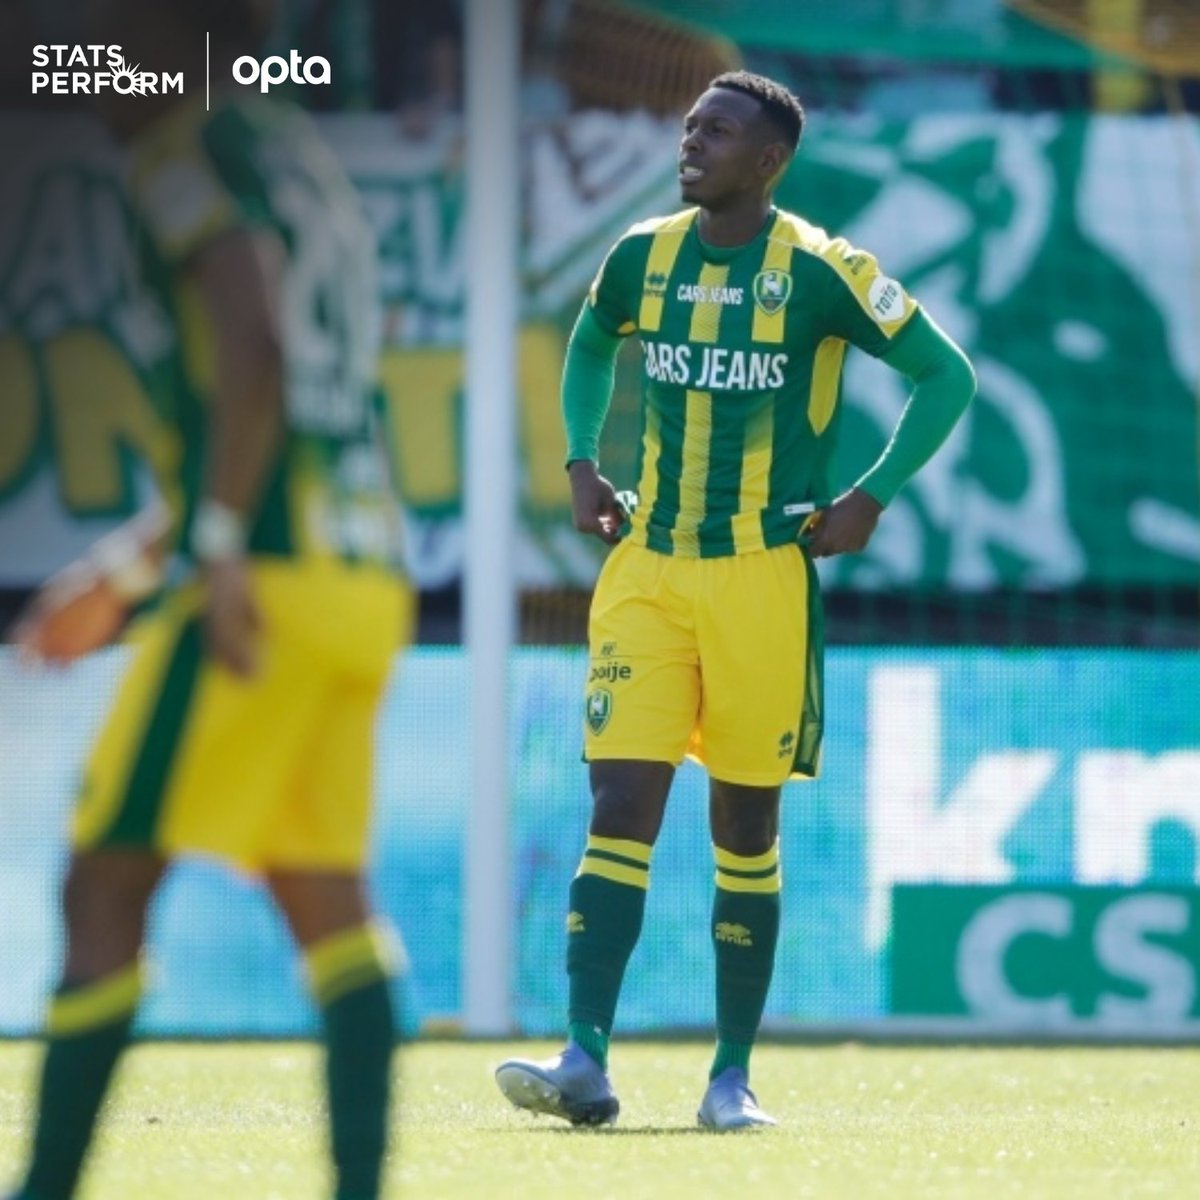 Optajohan On Twitter 4 Ado Den Haag Have Failed To Score In Four Consecutive Eredivisie Home Games For The First Time Since 1982 Grounded Https T Co Qmnbsk2gsu